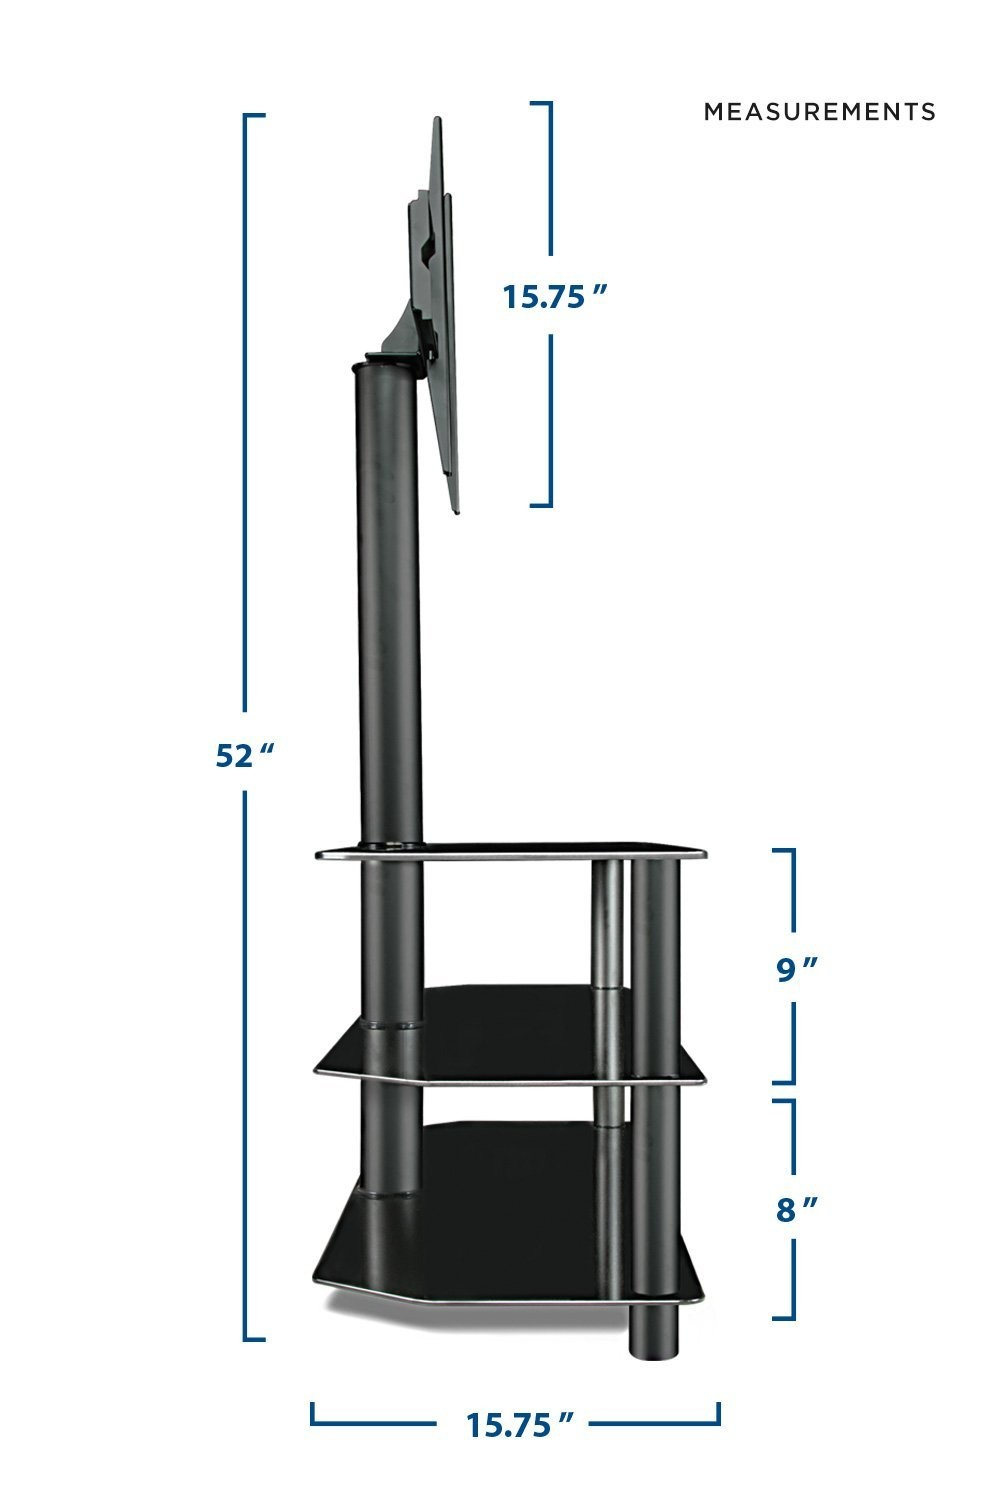 Tv Center Stand With Mount And Glass Shelves For Audio